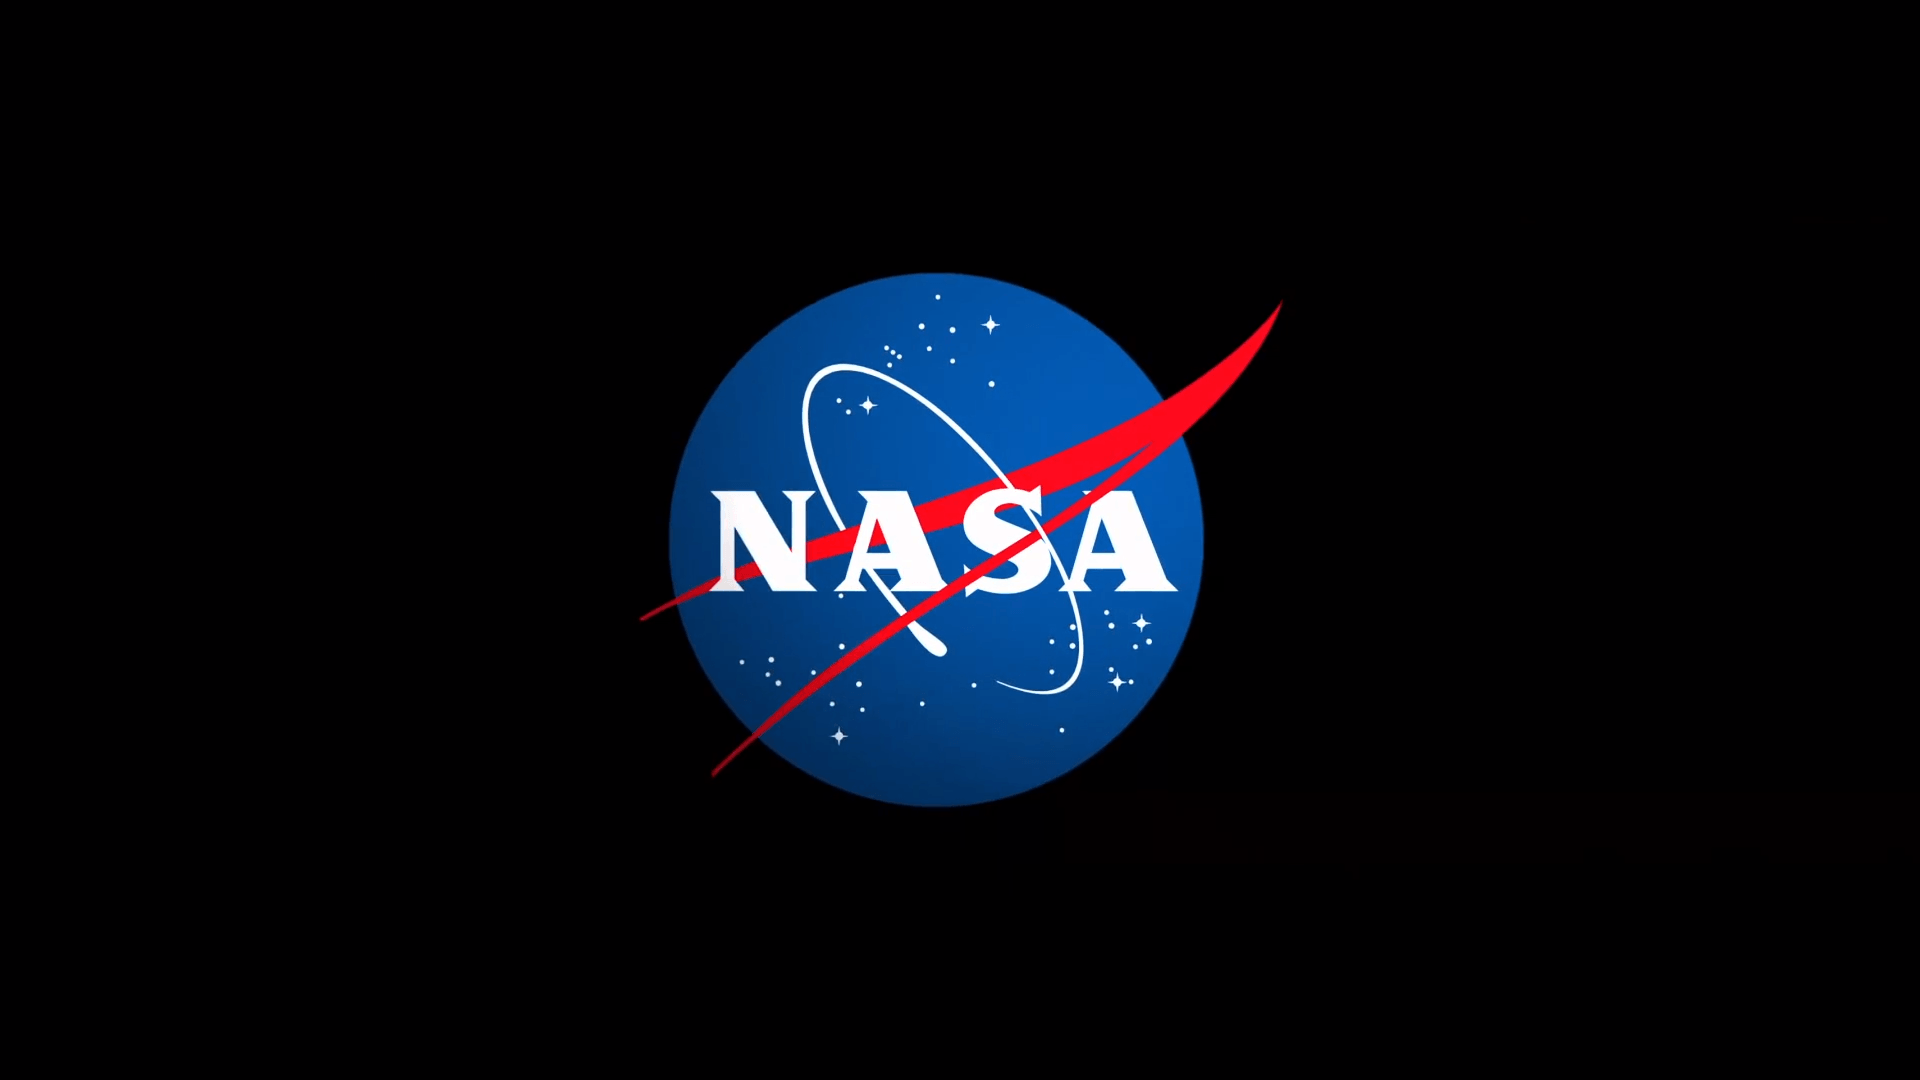 nasa logo wallpaper 63436